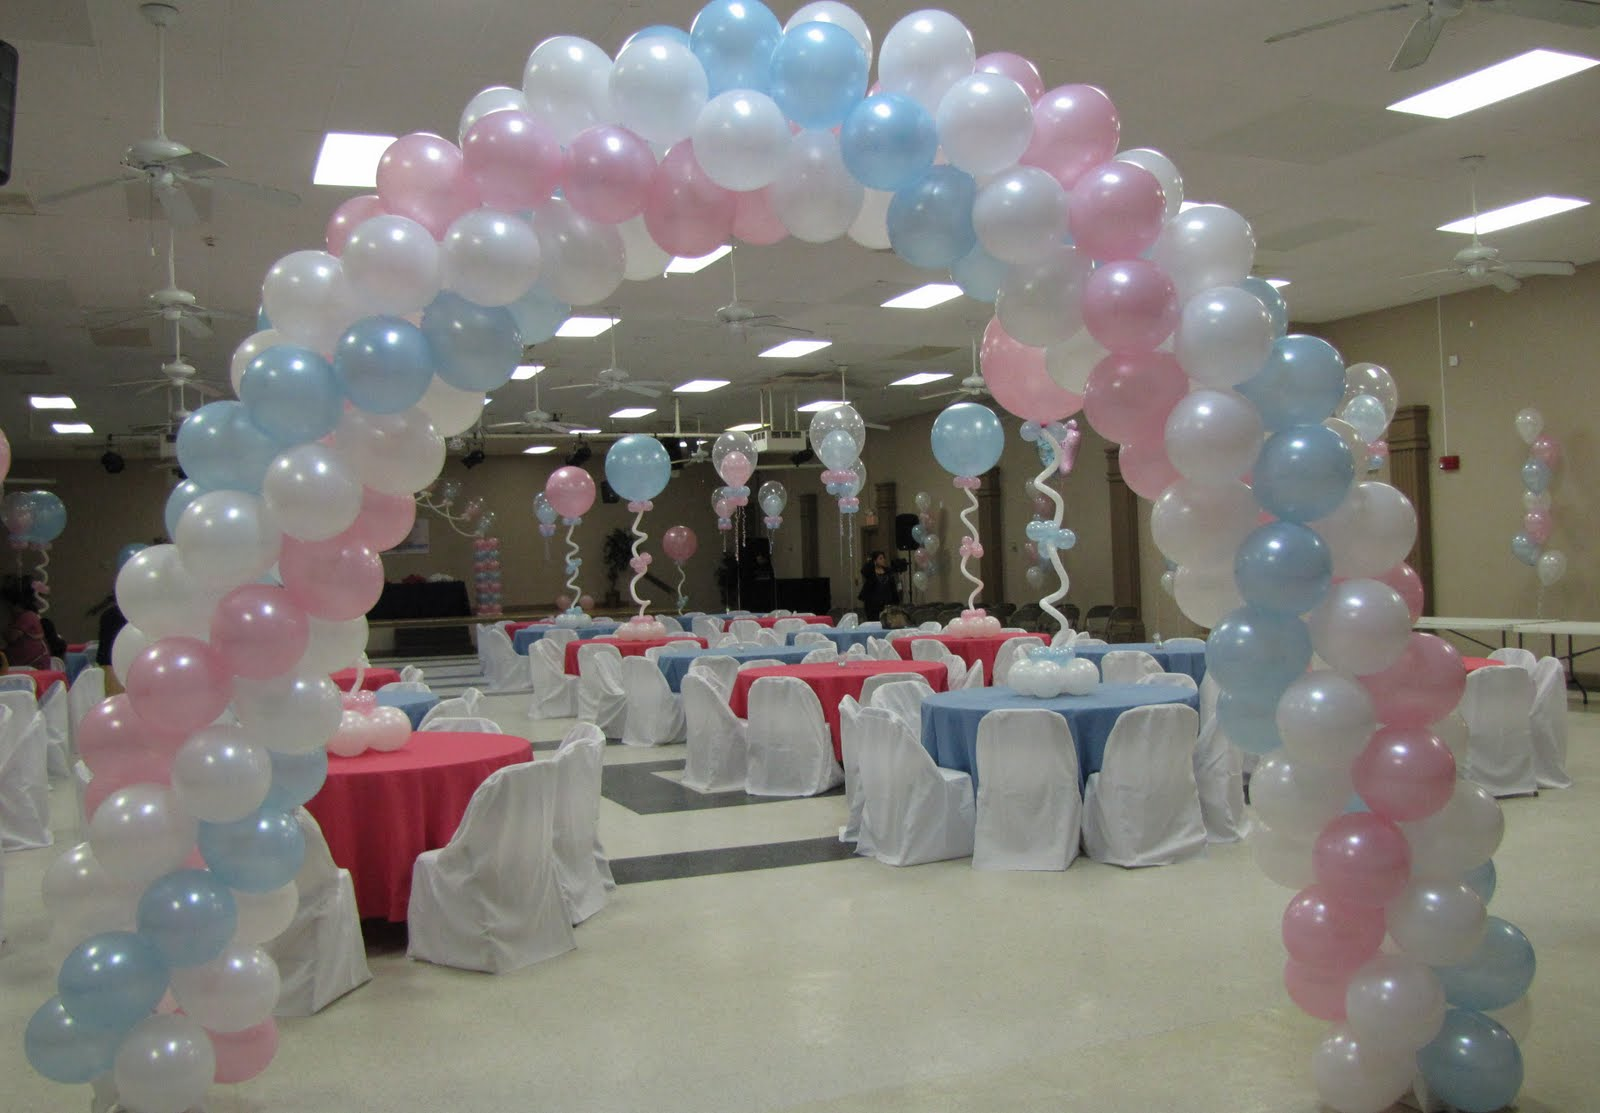 Balloons decorations for baby shower party favors ideas for Baby decoration ideas